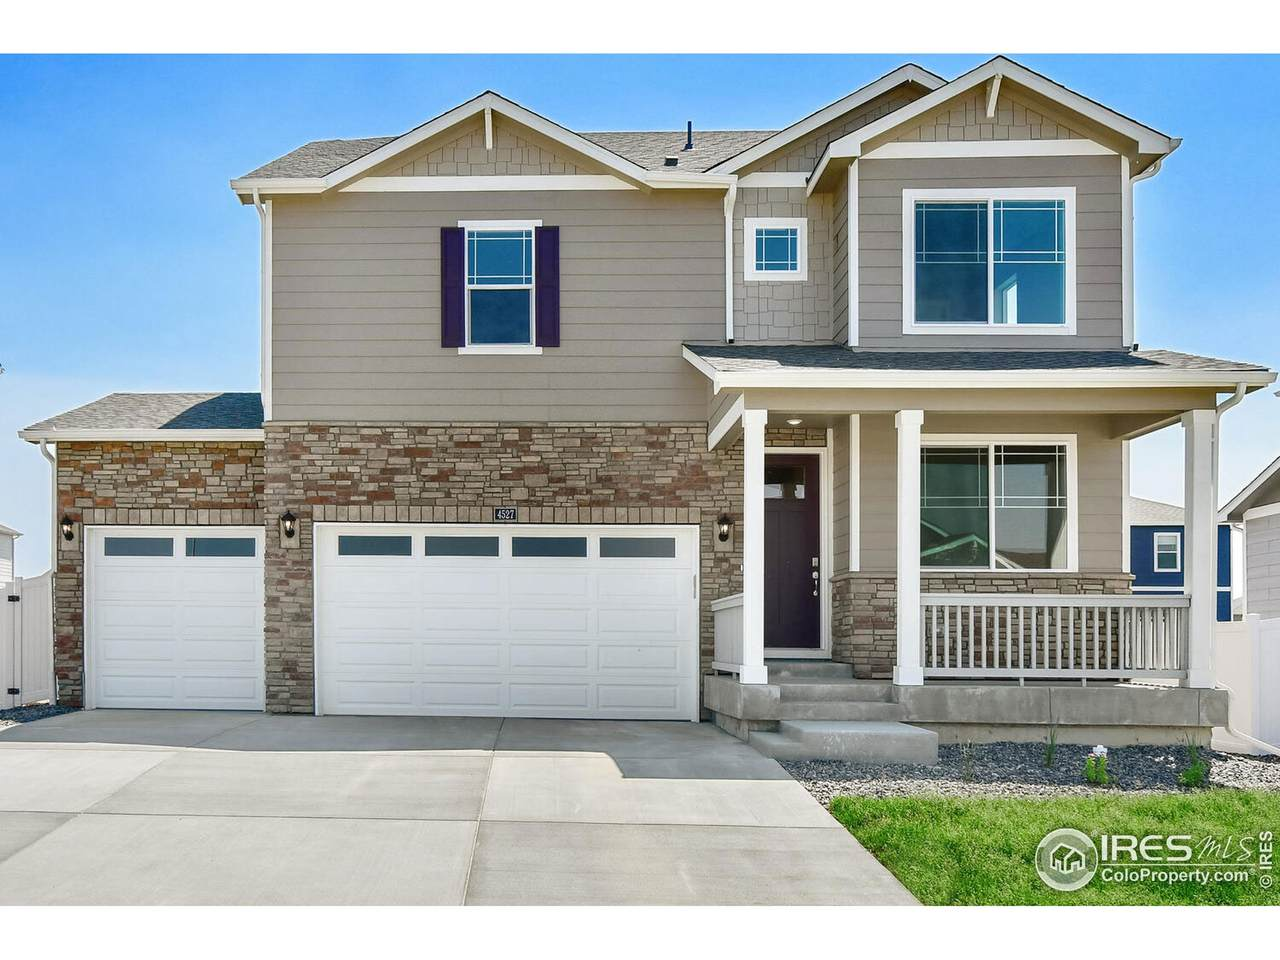 4527 Beauforts Dr - Photo 1